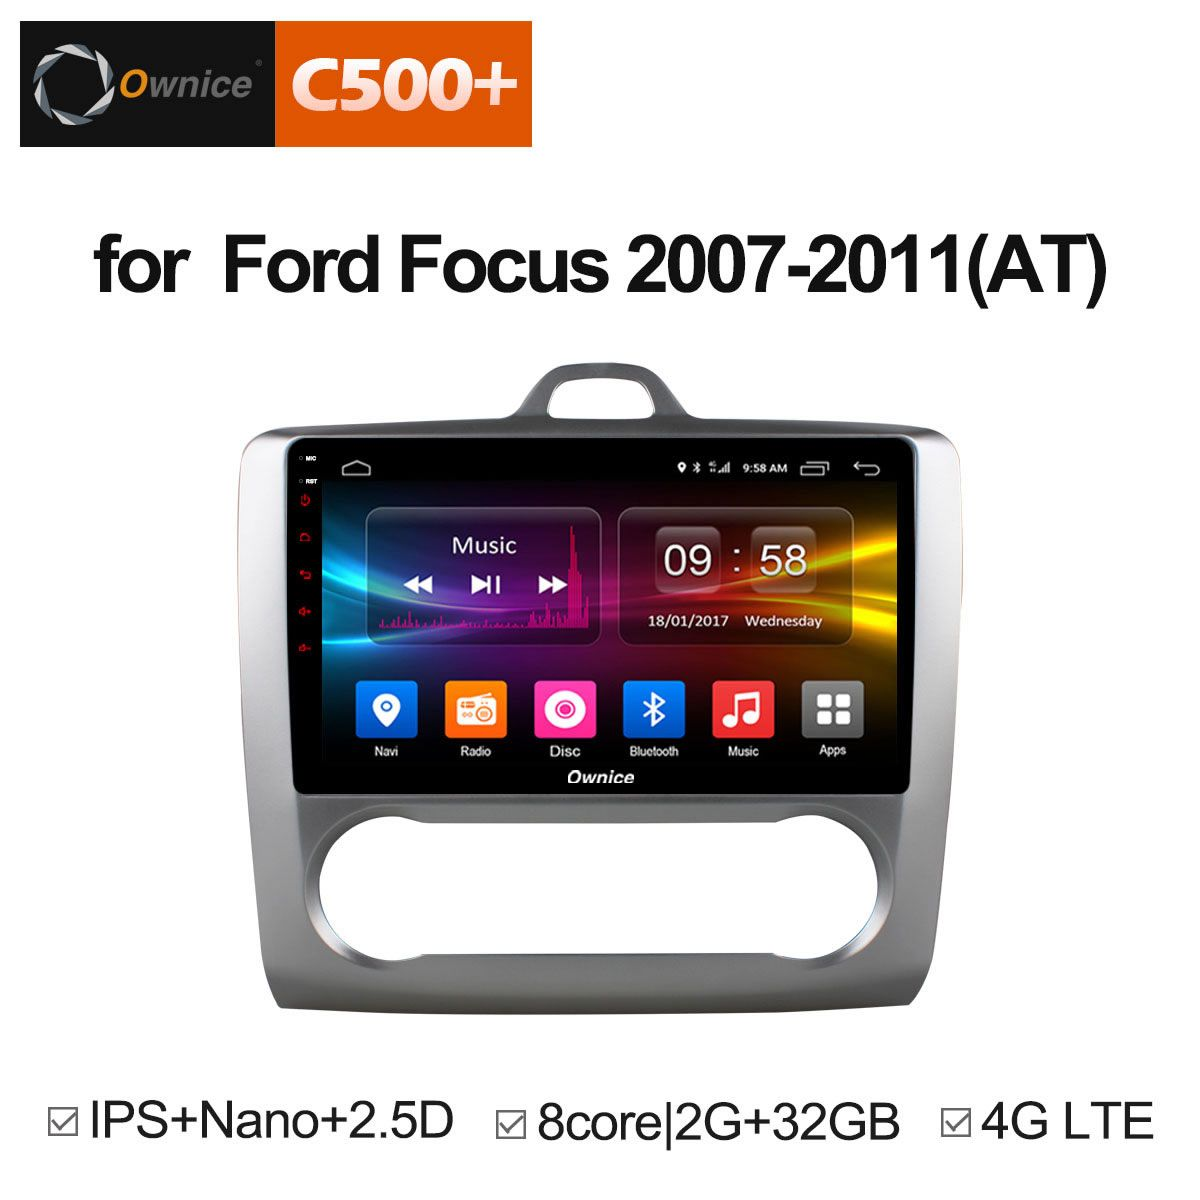 Ownice C500+ G10 Octa Core Android Car Radio DVD player GPS Navi 2G/32G Support 4G LTE For Ford Focus 2007 2008 2009 2010 2011